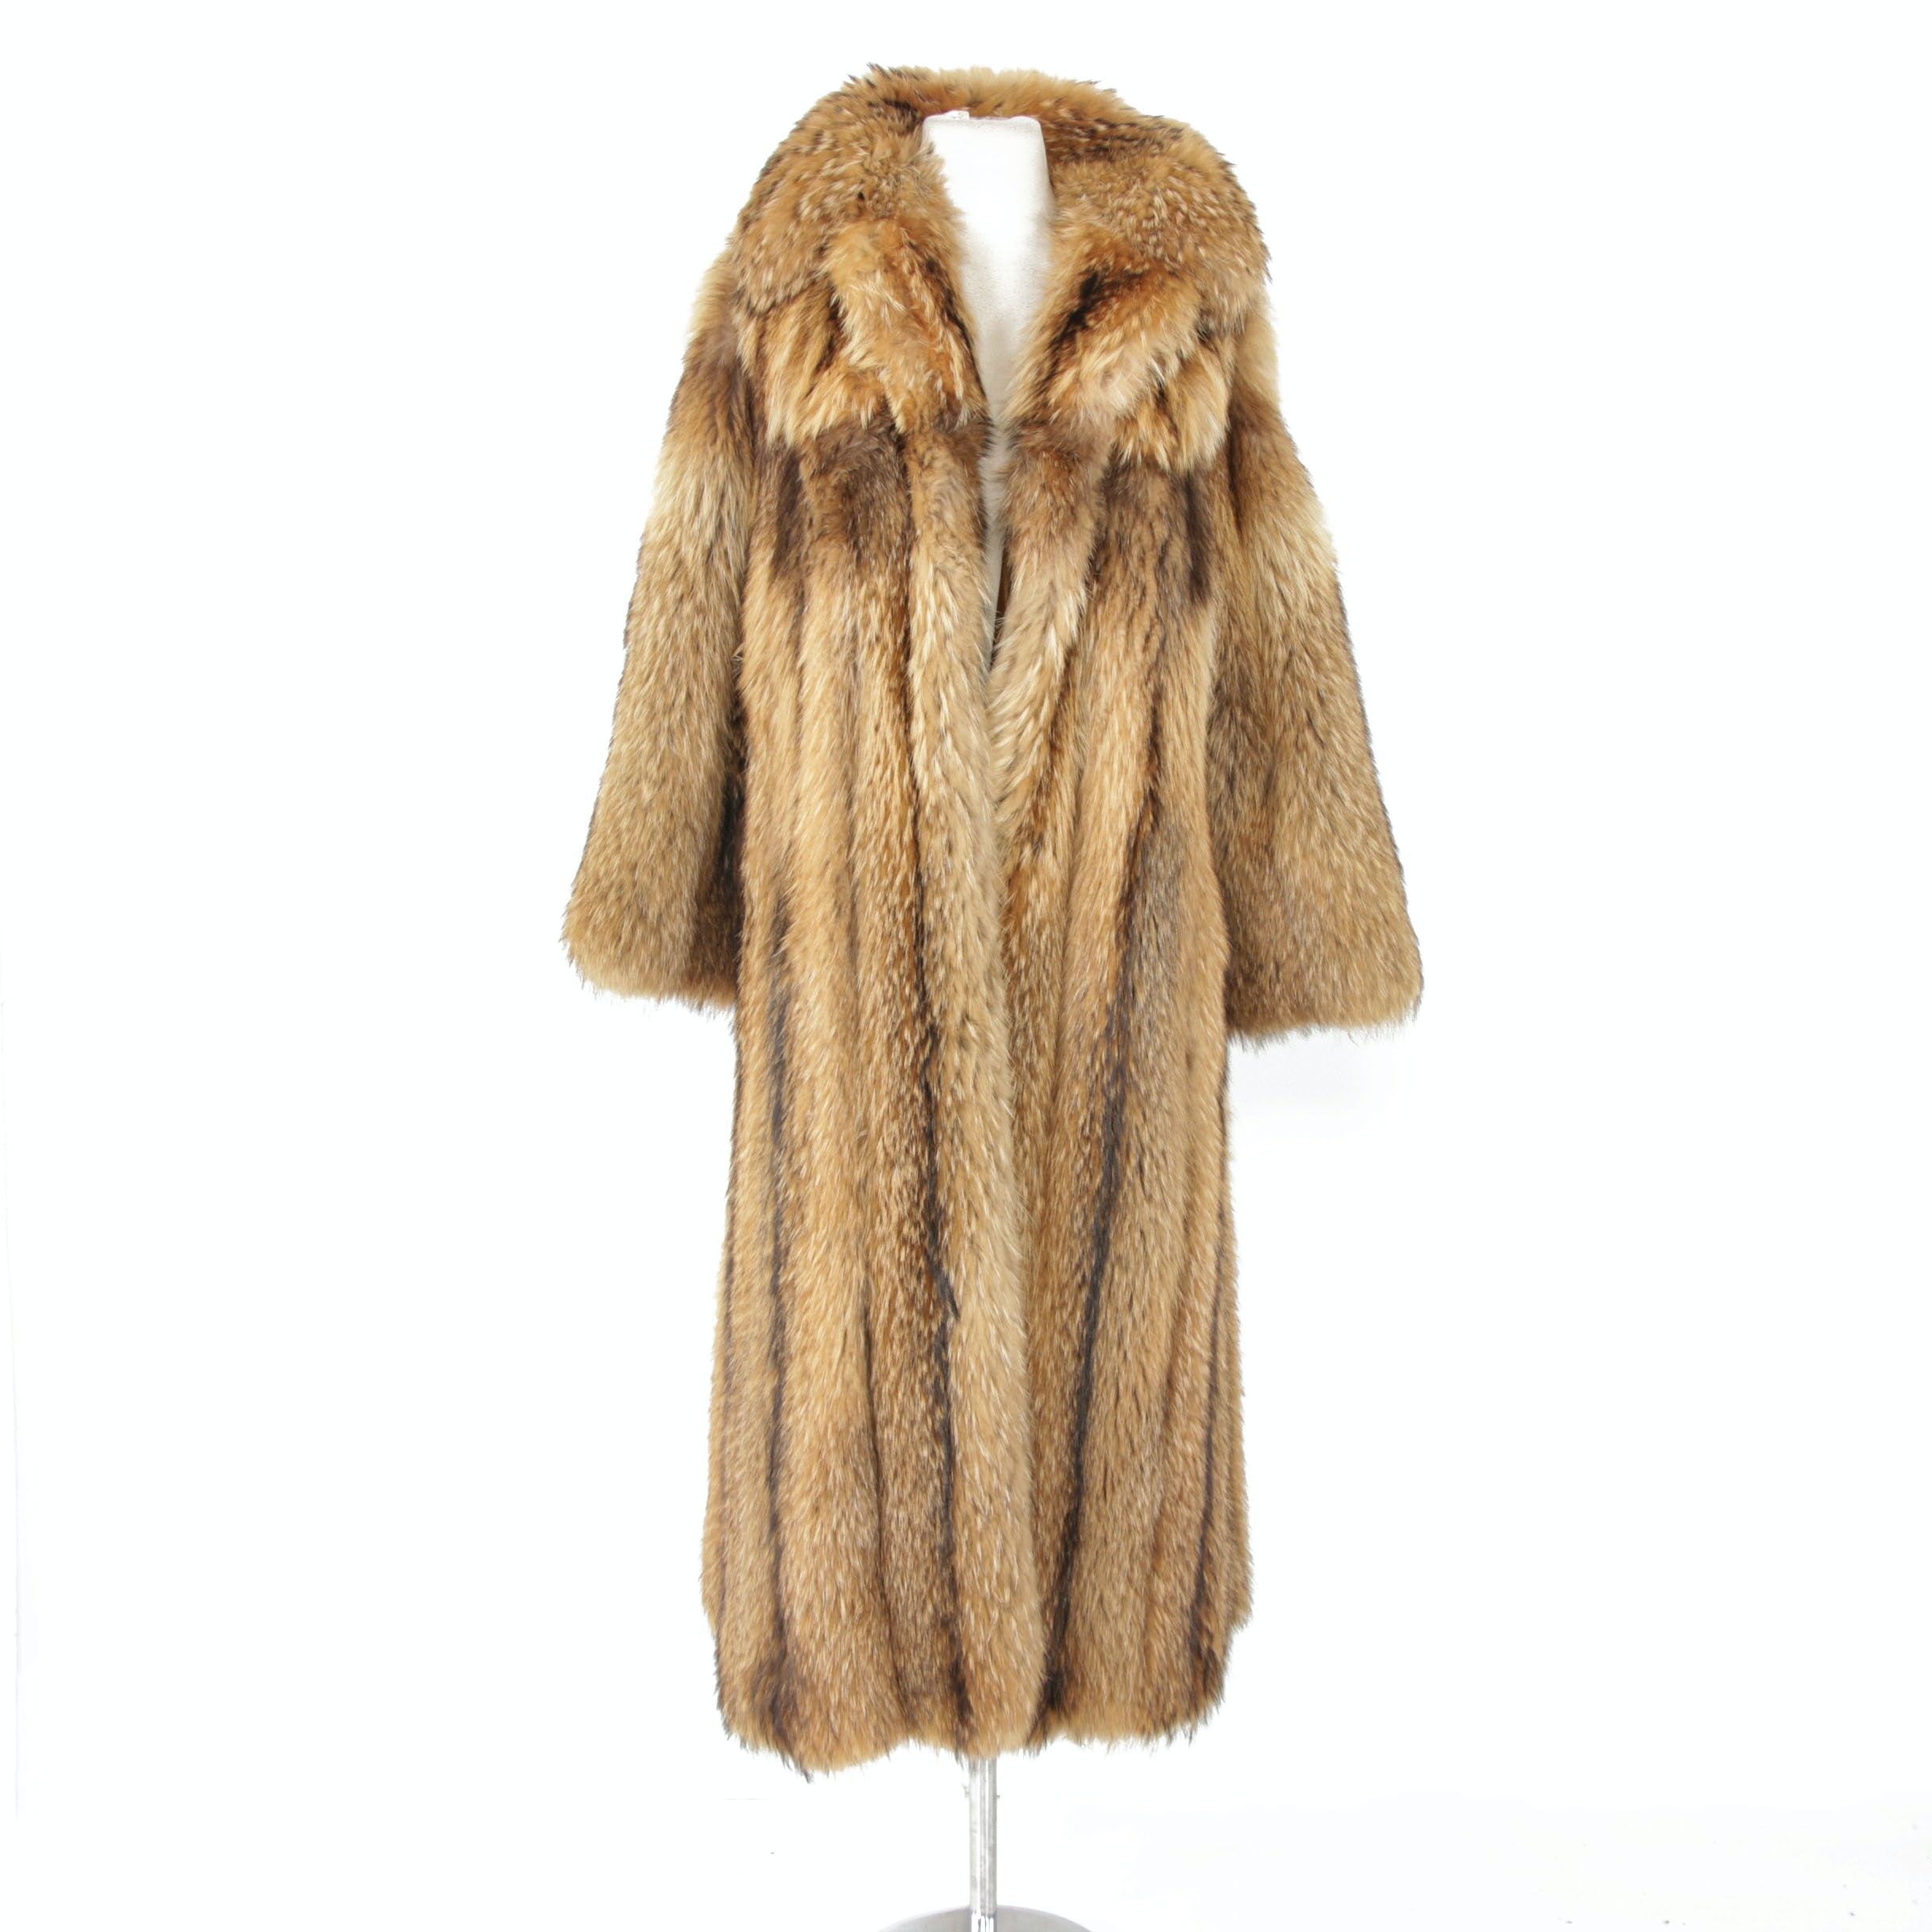 Geoffrey Beene for Montaldo's Finn Raccoon Fur Full-Length Coat, Vintage